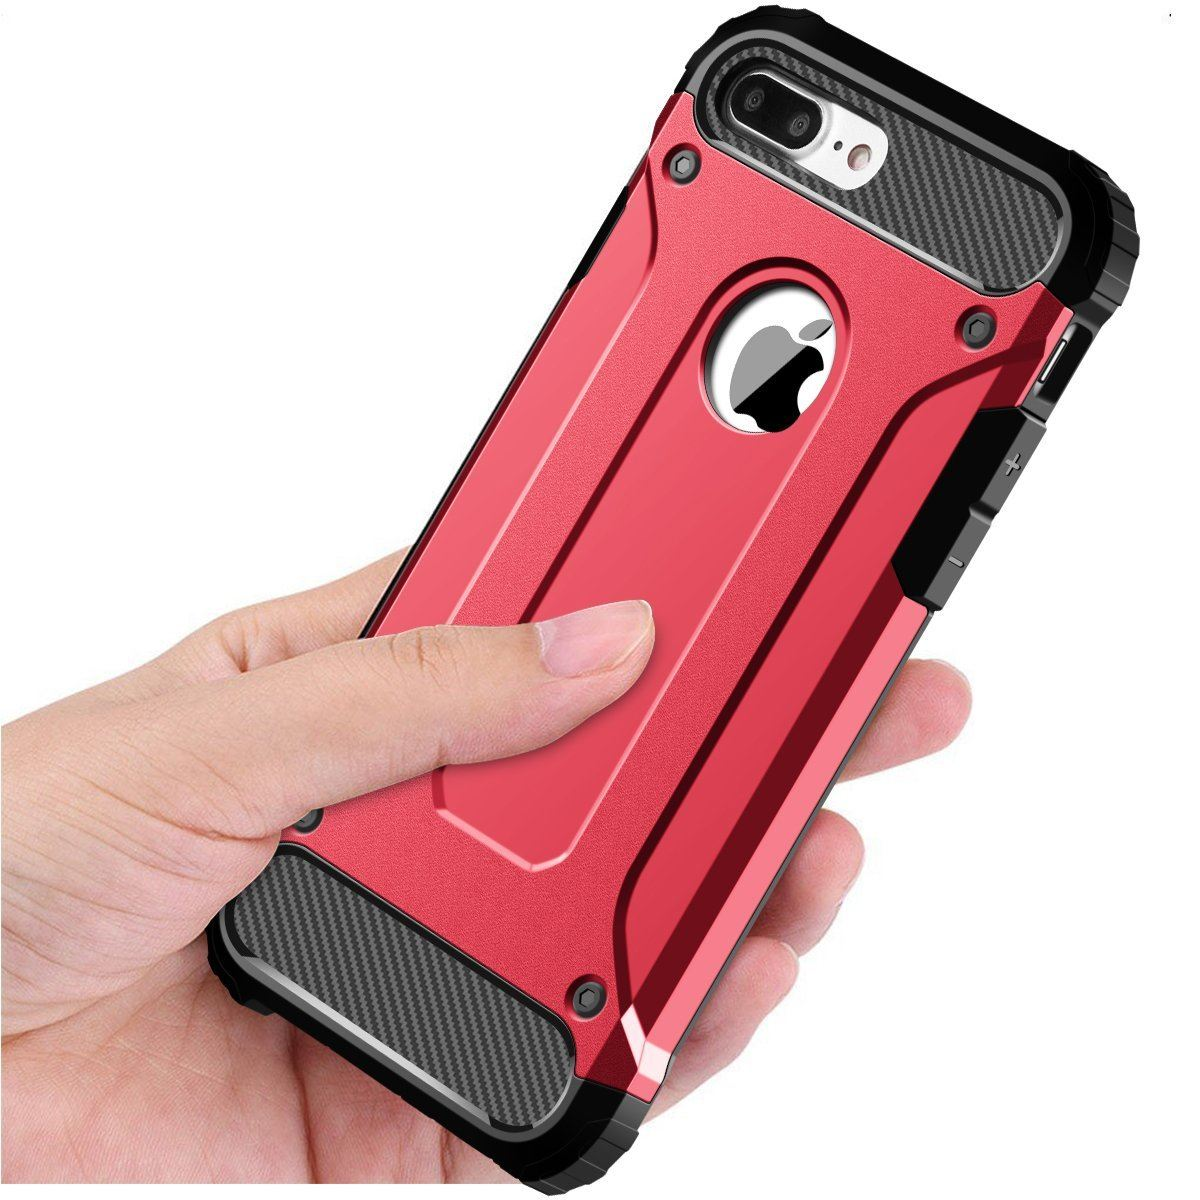 Hybrid-Armor-Shockproof-Rugged-Bumper-Case-For-Apple-iPhone-10-X-8-7-Plus-6s-5s miniature 45